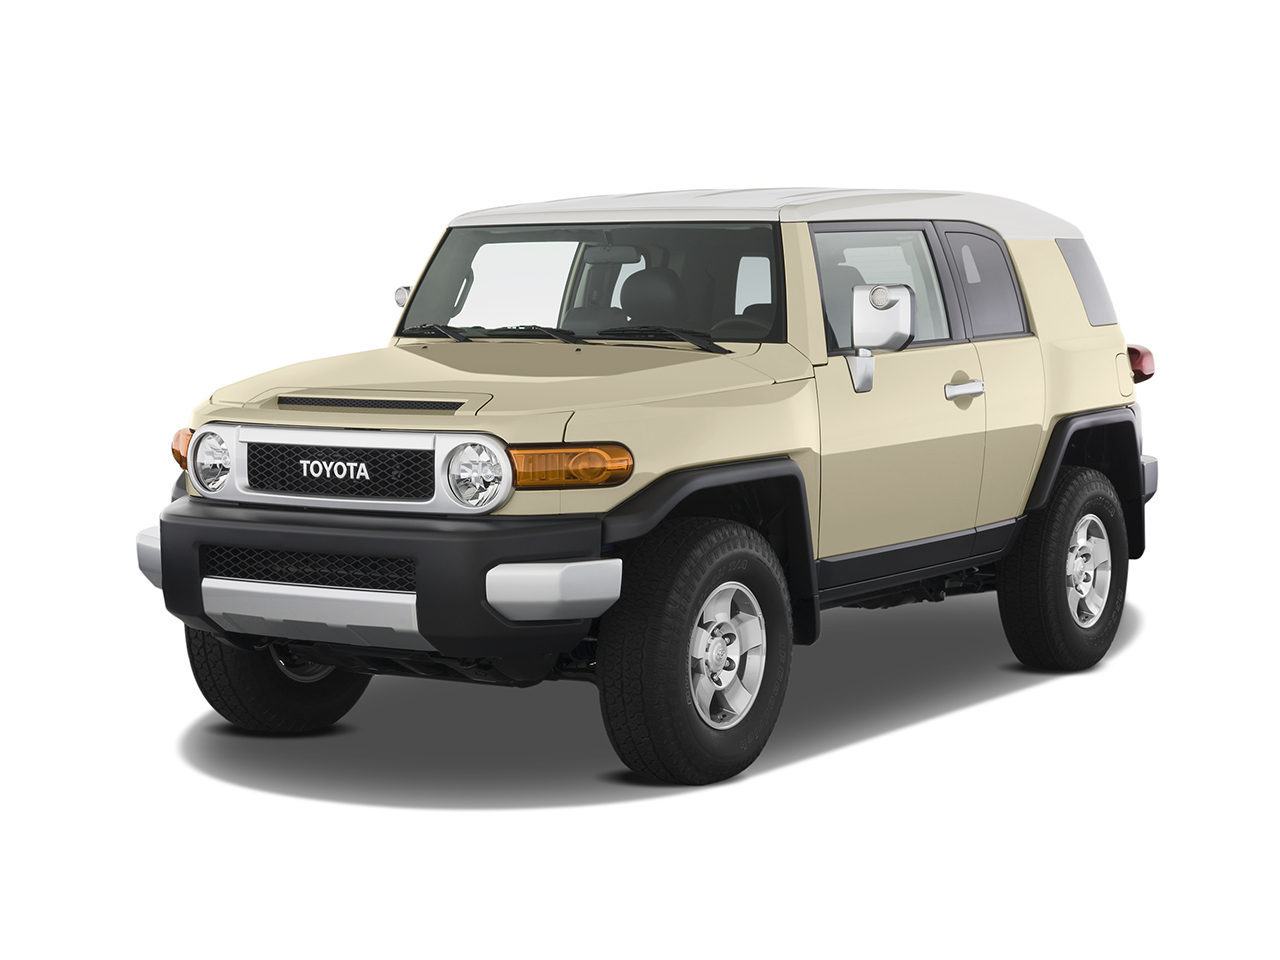 2018 Toyota Fj Cruiser Prices In Uae Gulf Specs Amp Reviews